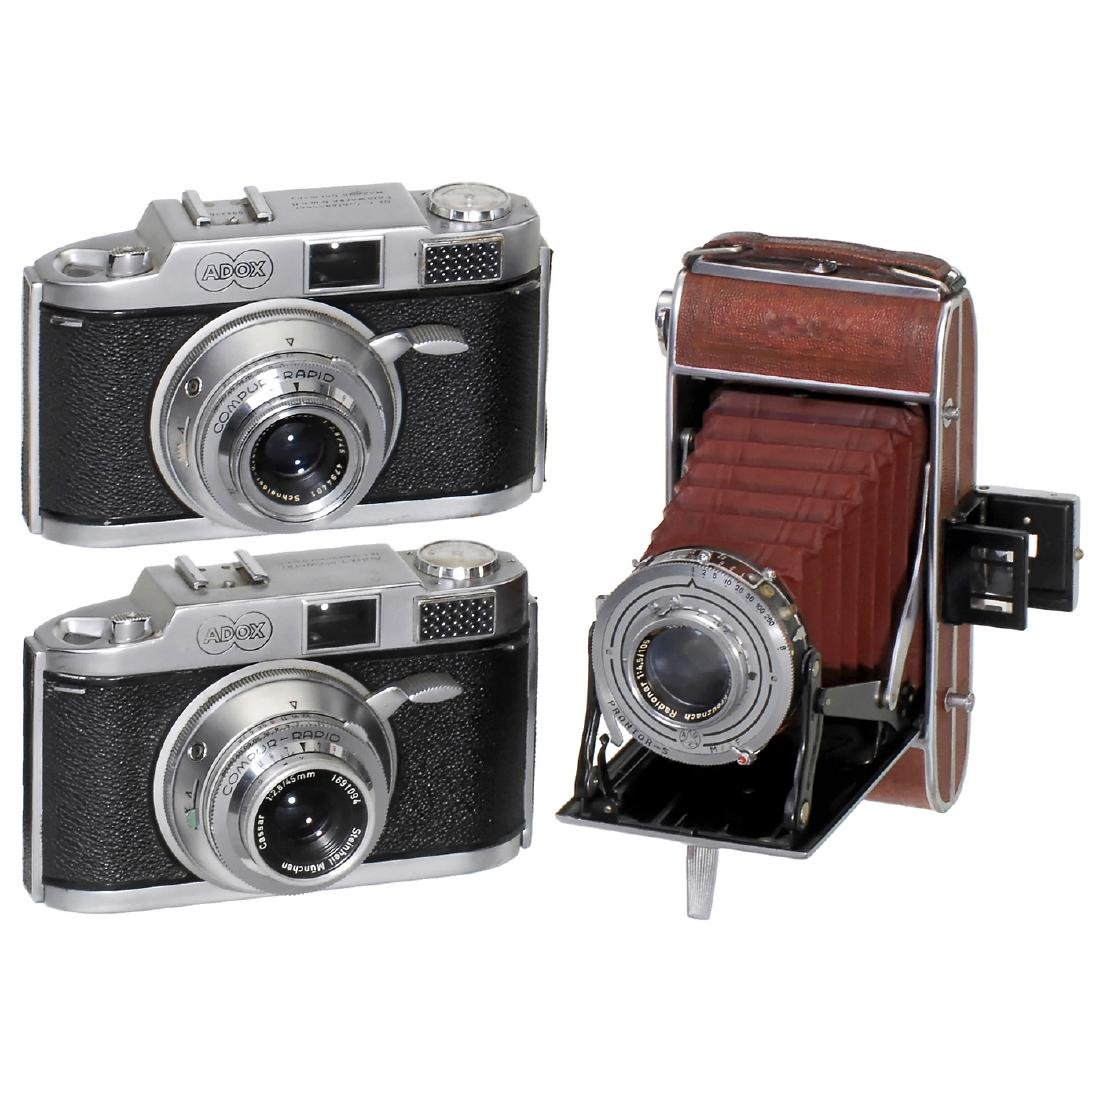 2 x Adox 300 and Sport III (Luxury Version)